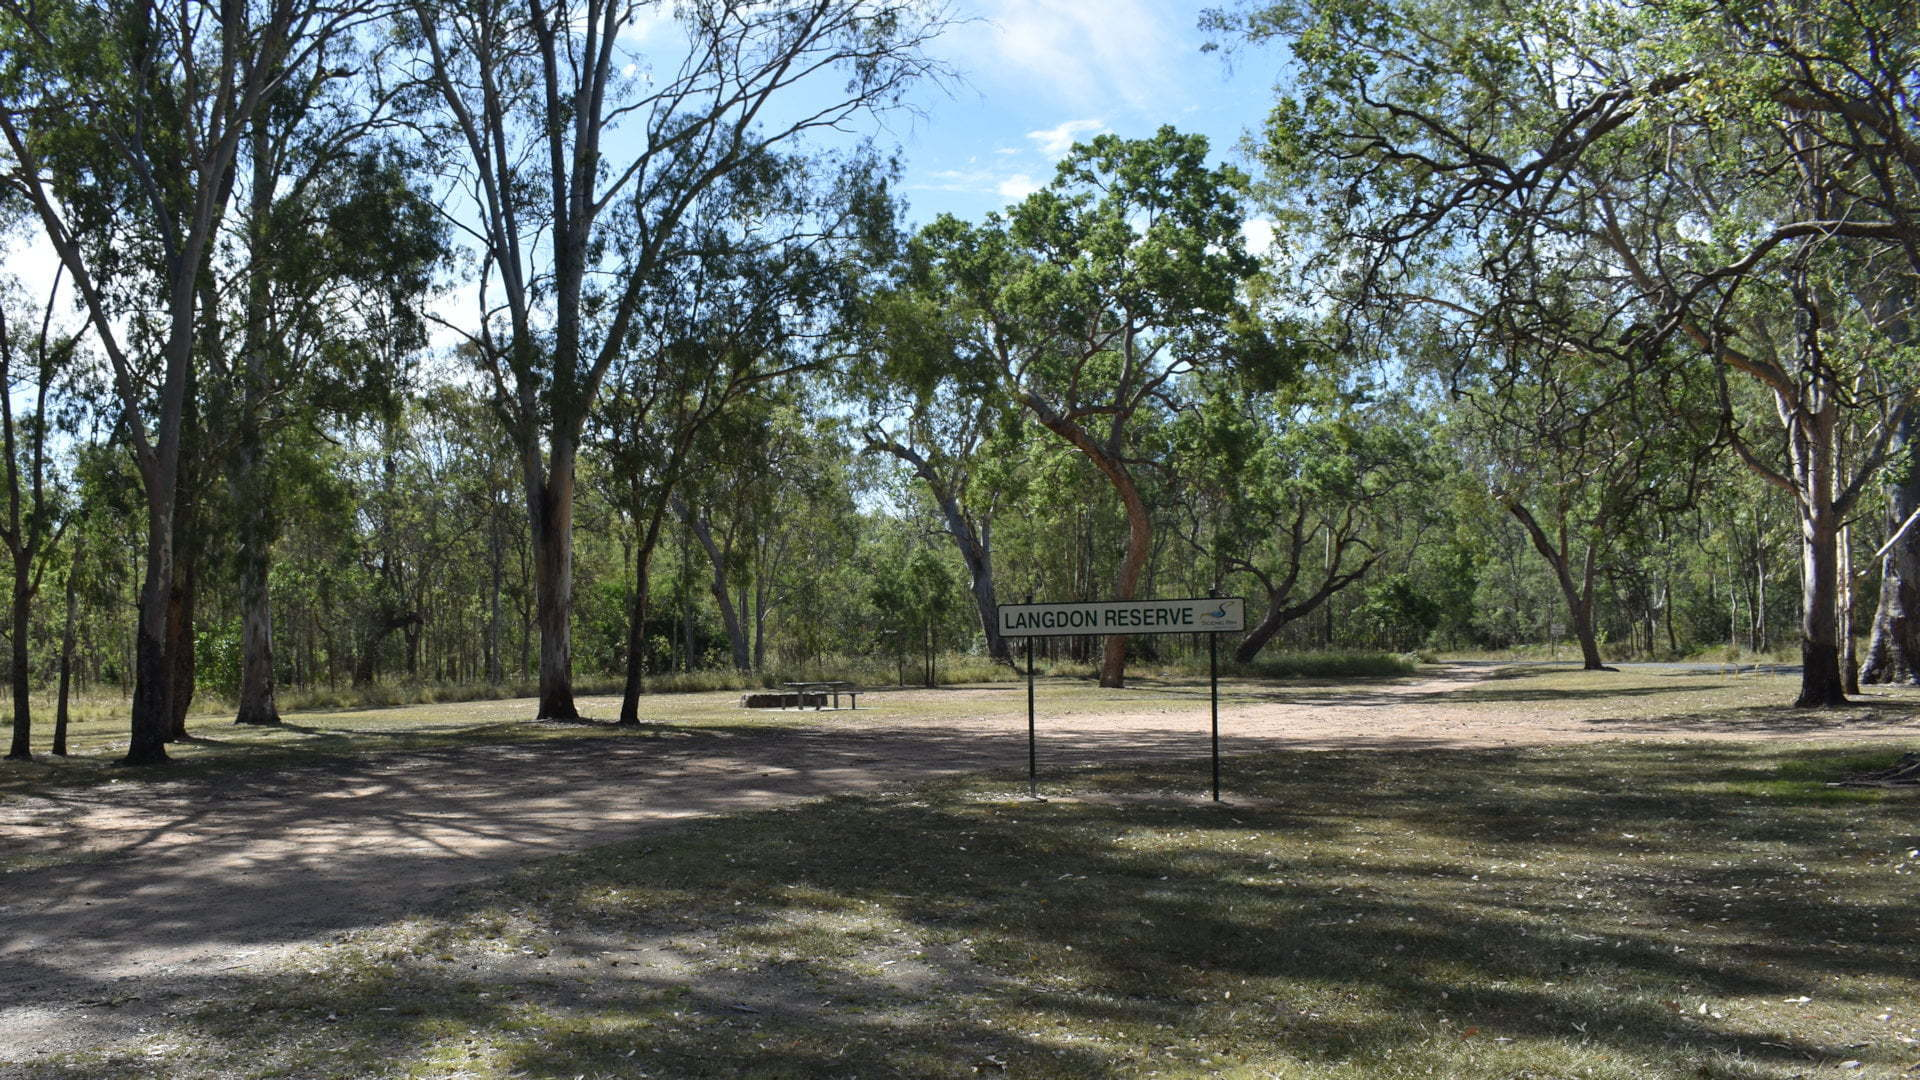 Langdon Reserve rest stop area between Rathdowney and Beaudesert, overnight free camp